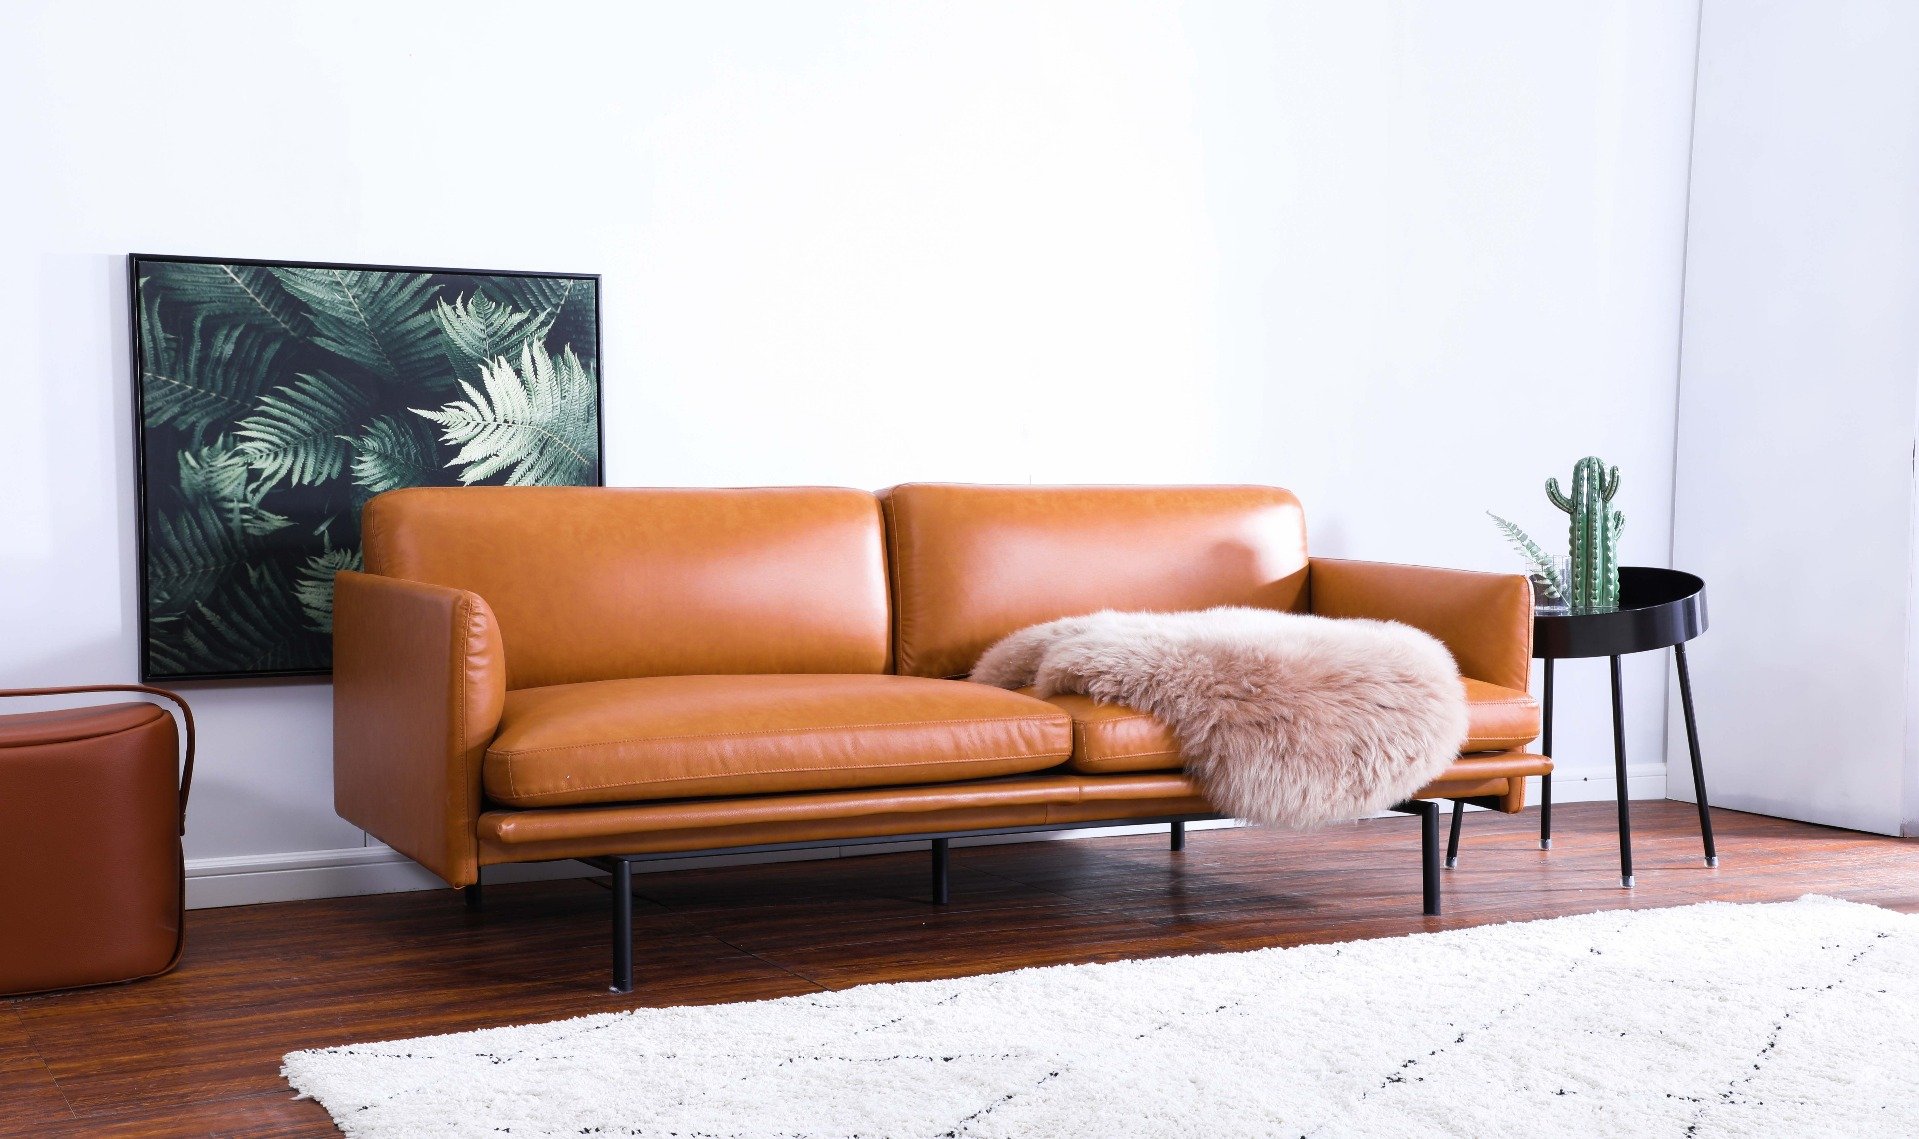 Top grain leather superior to genuine leather – gives glossy, stain-resistant finish.